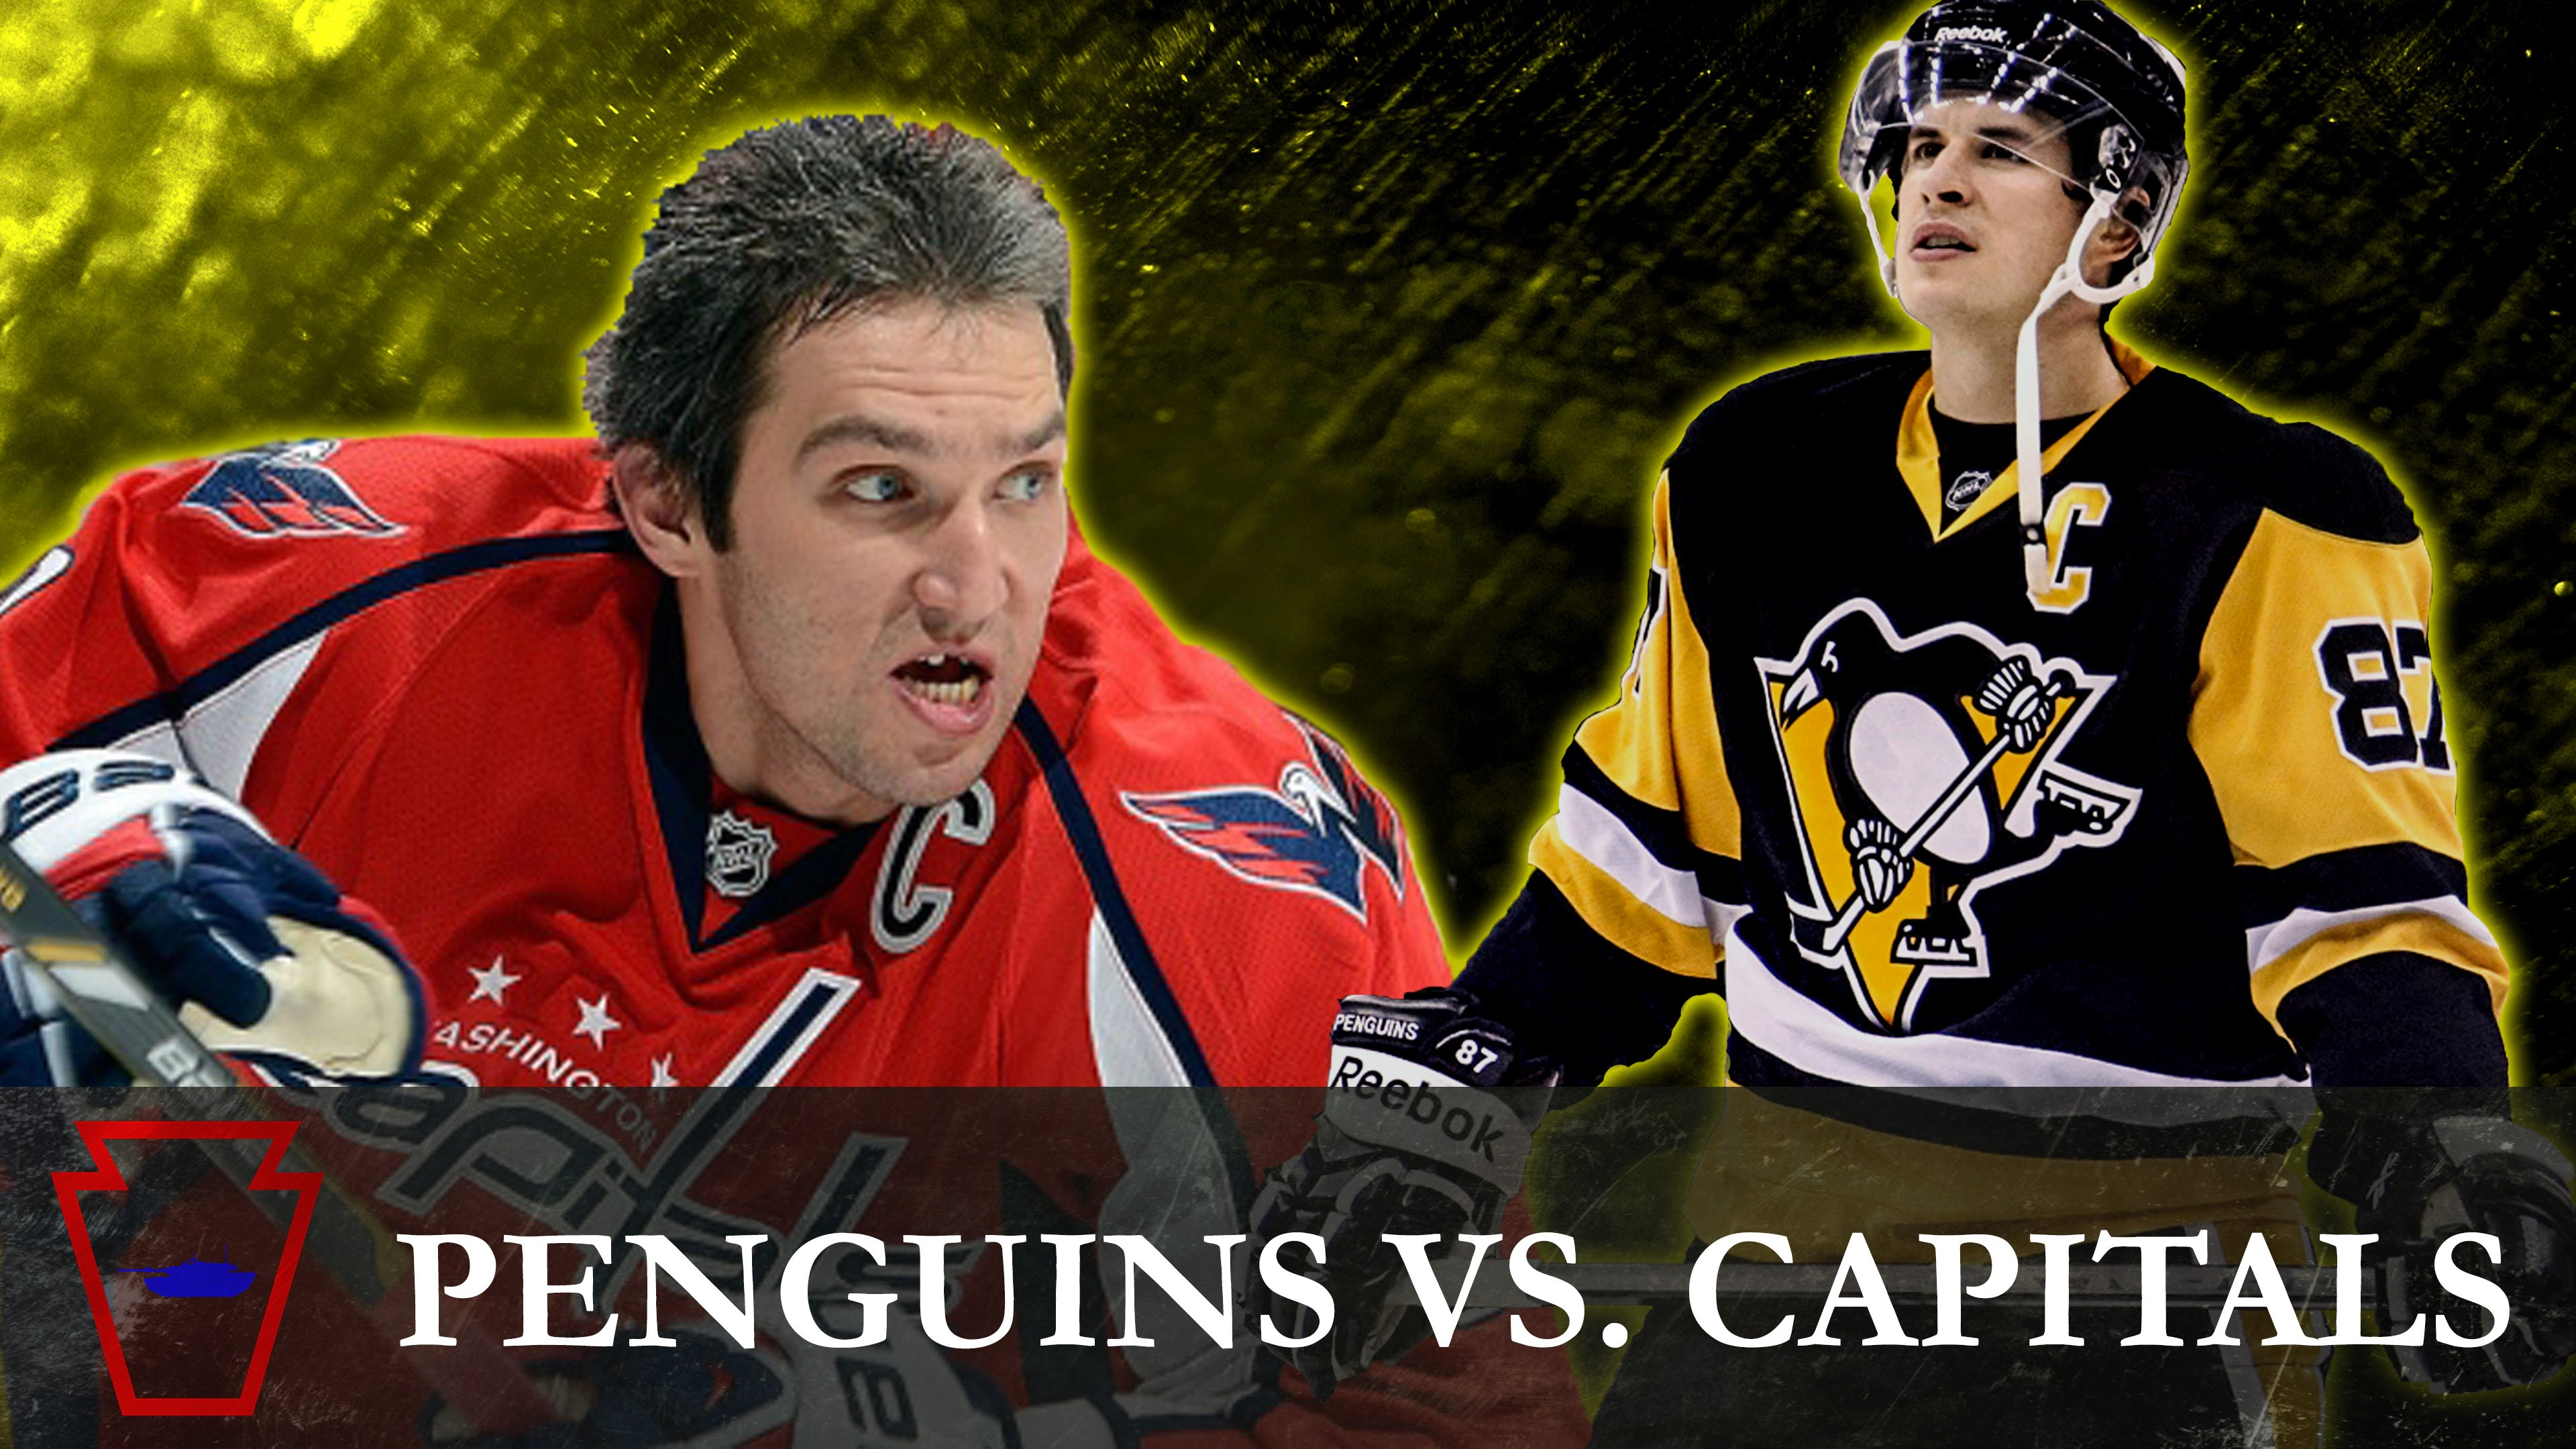 capitals vs penguins